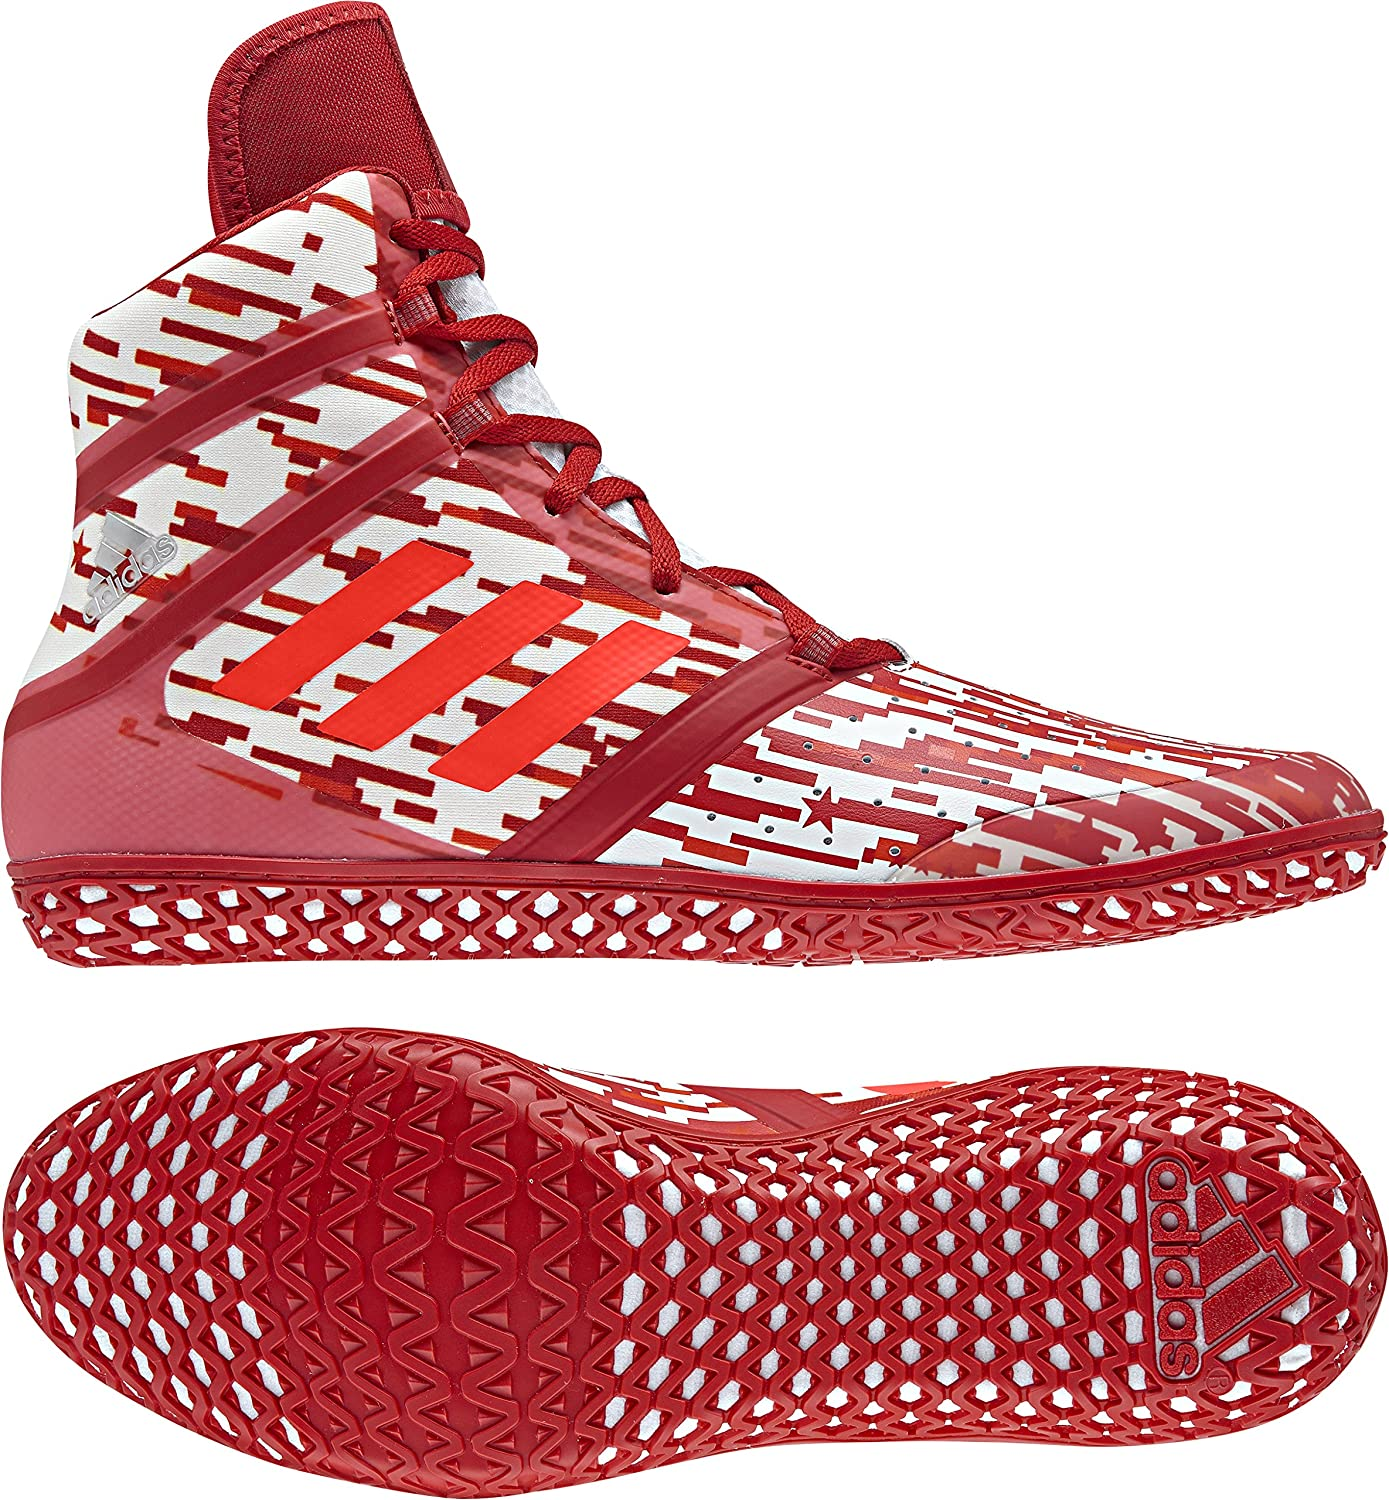 adidas Impact Men's Wrestling Shoes, Red Digital Print, Size 6.5